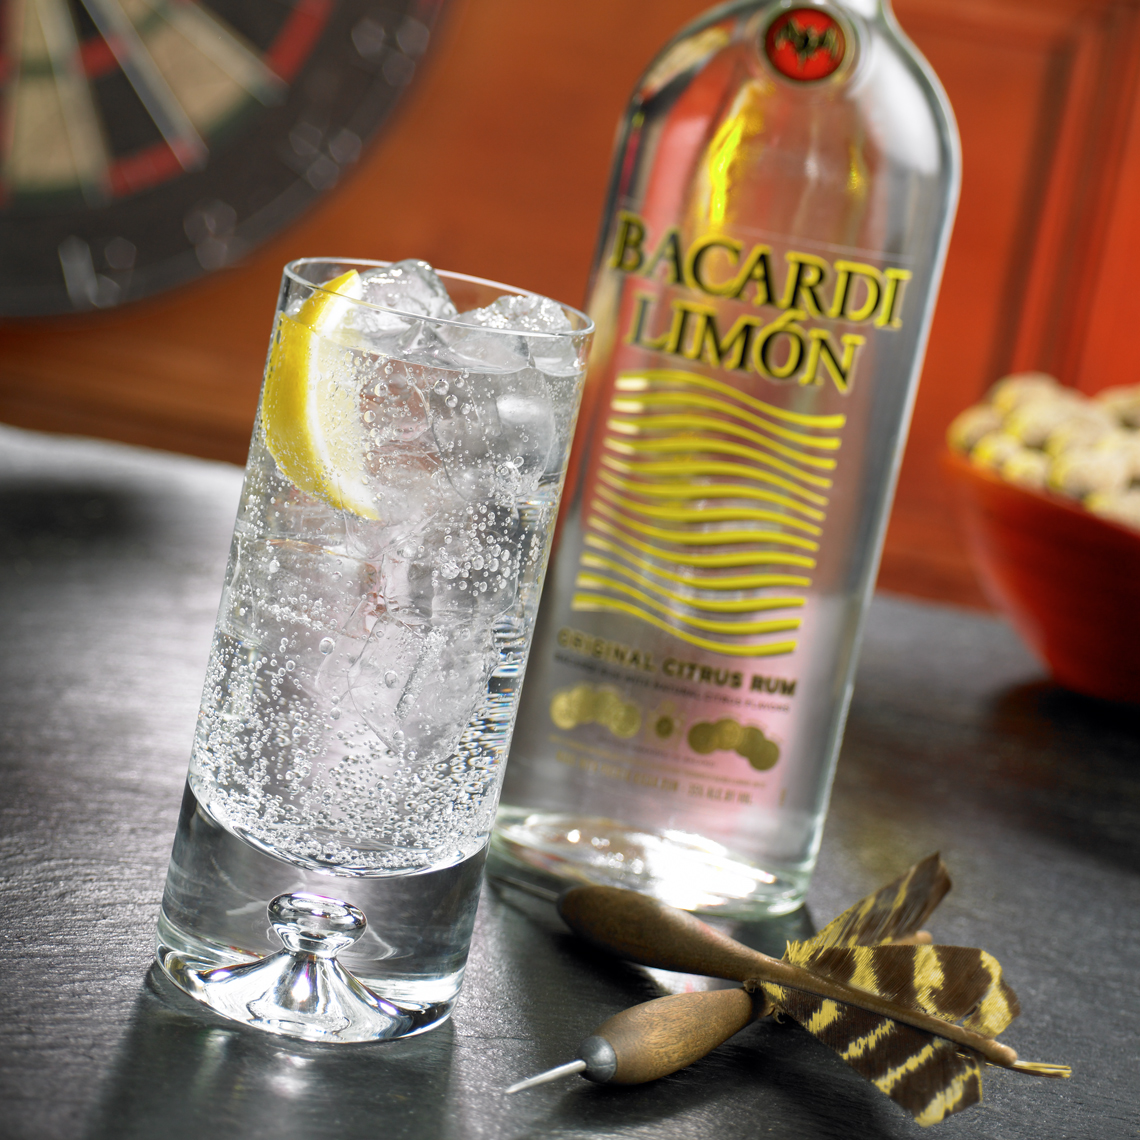 Bacardi Limon bottle and cocktail